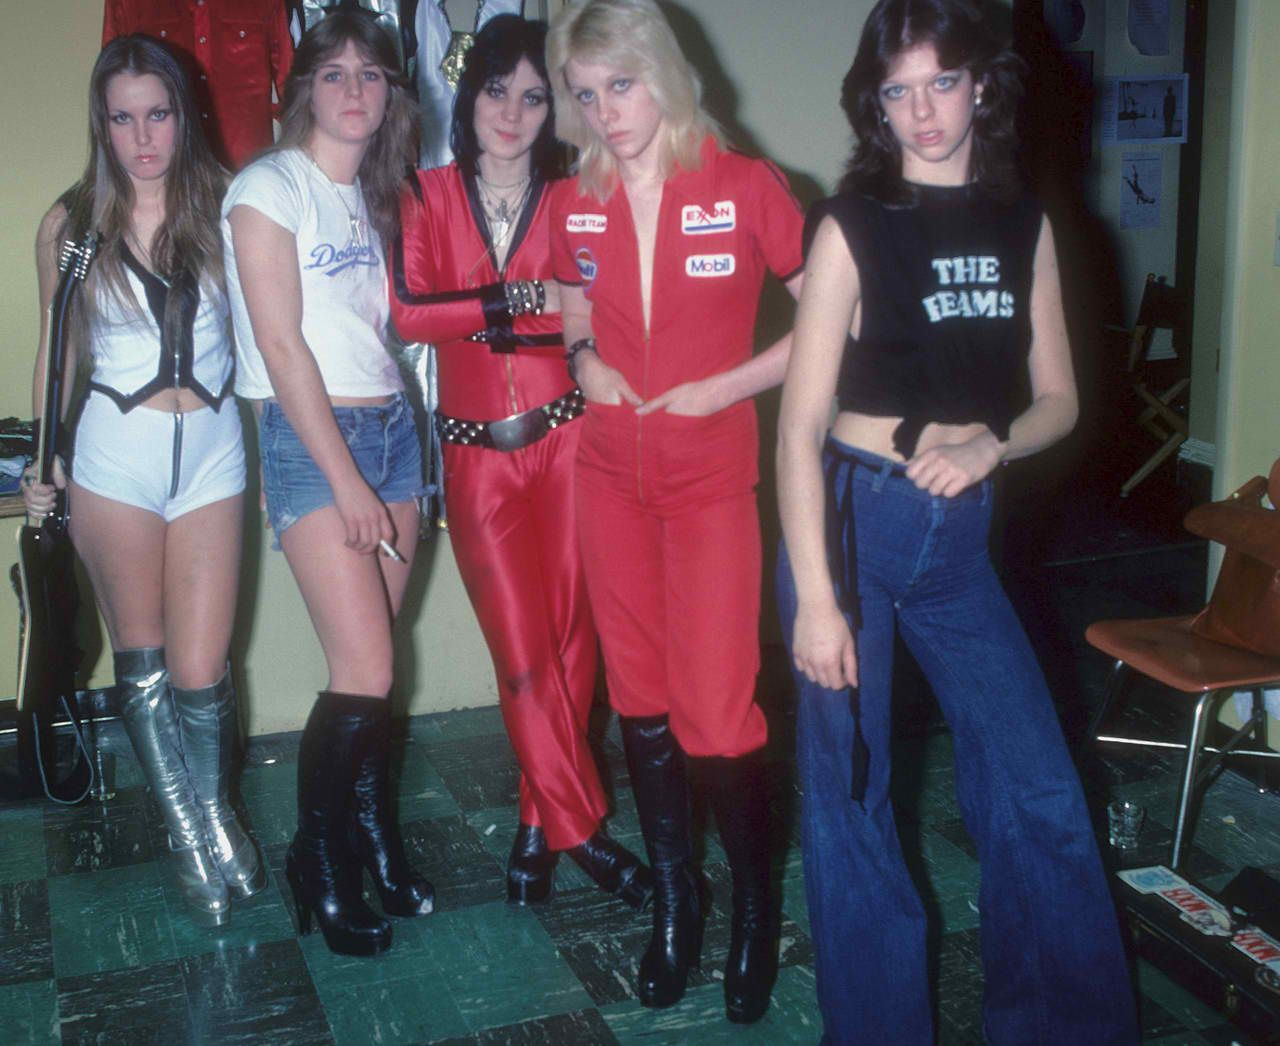 Jackie Fox, Lita Ford, Sandy West, Cherie Curie and Joan Jett